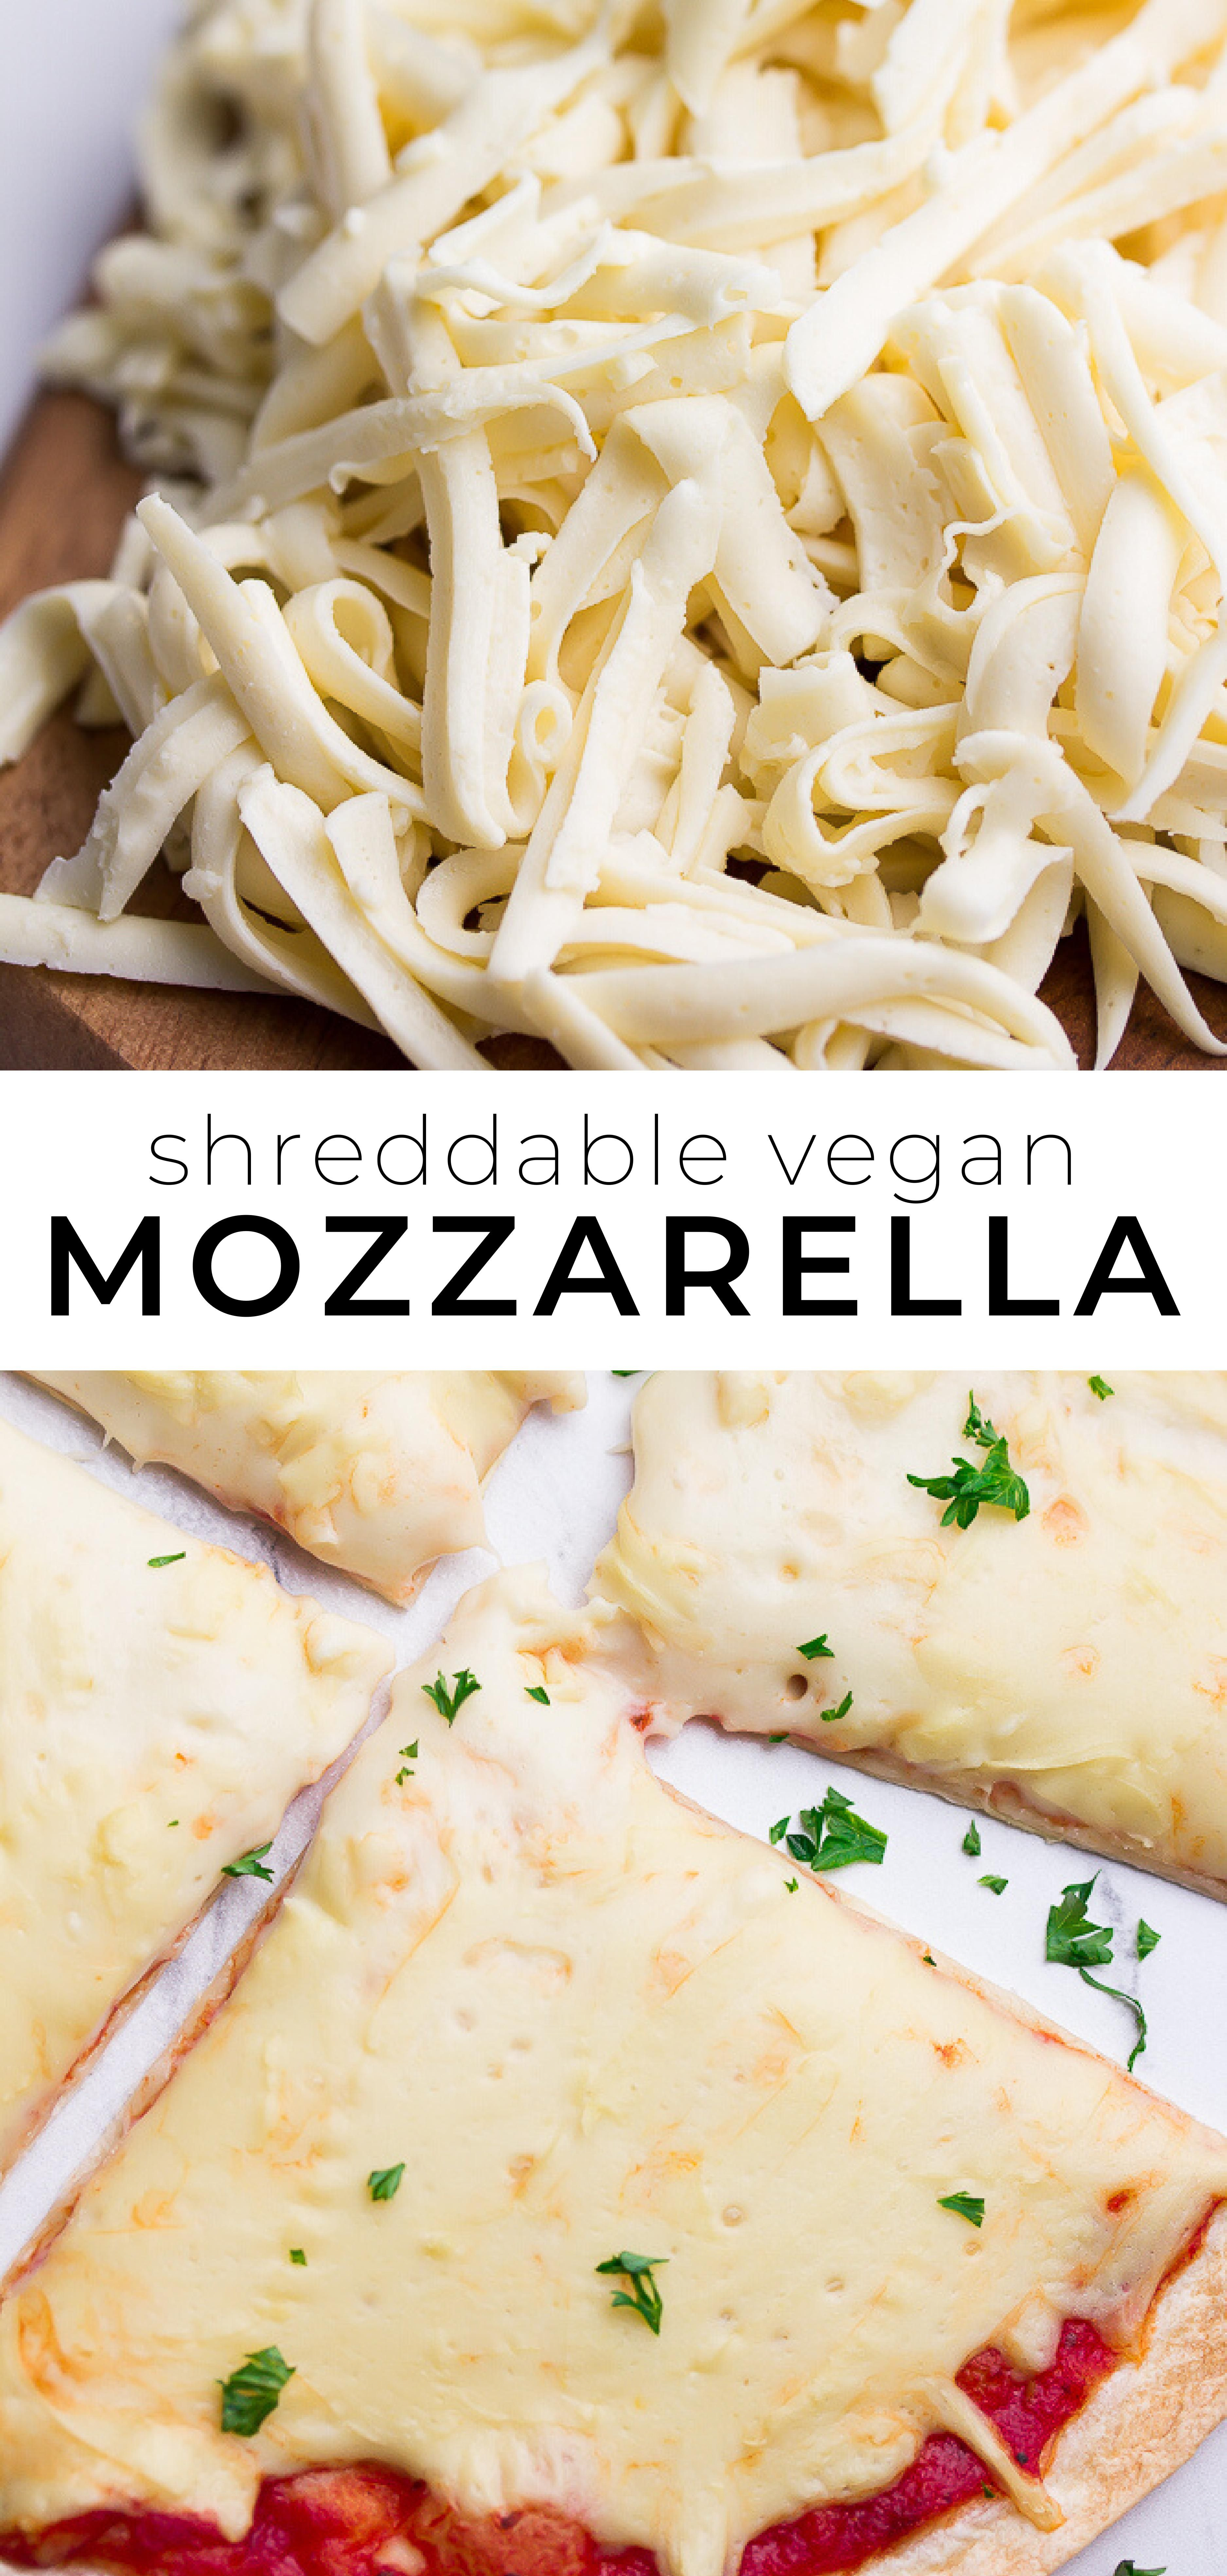 Vegan Mozzarella that can be shredded or sliced! It melts and stretches beautifully just like the real thing and only takes minutes to make!